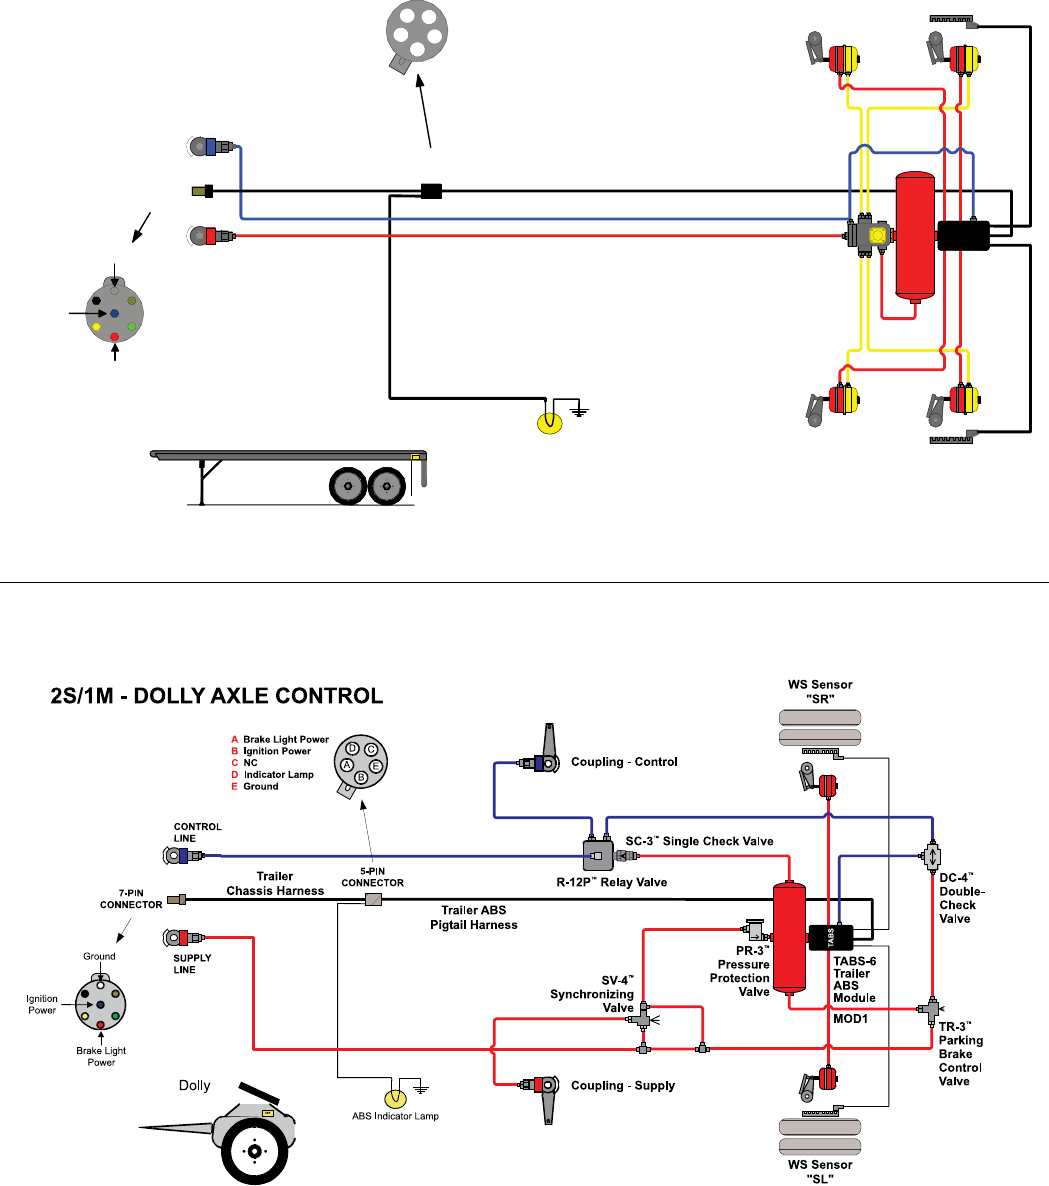 bendix abs wiring diagram bendix tabs 6 trailer abs module users manual manualslib makes it  bendix tabs 6 trailer abs module users